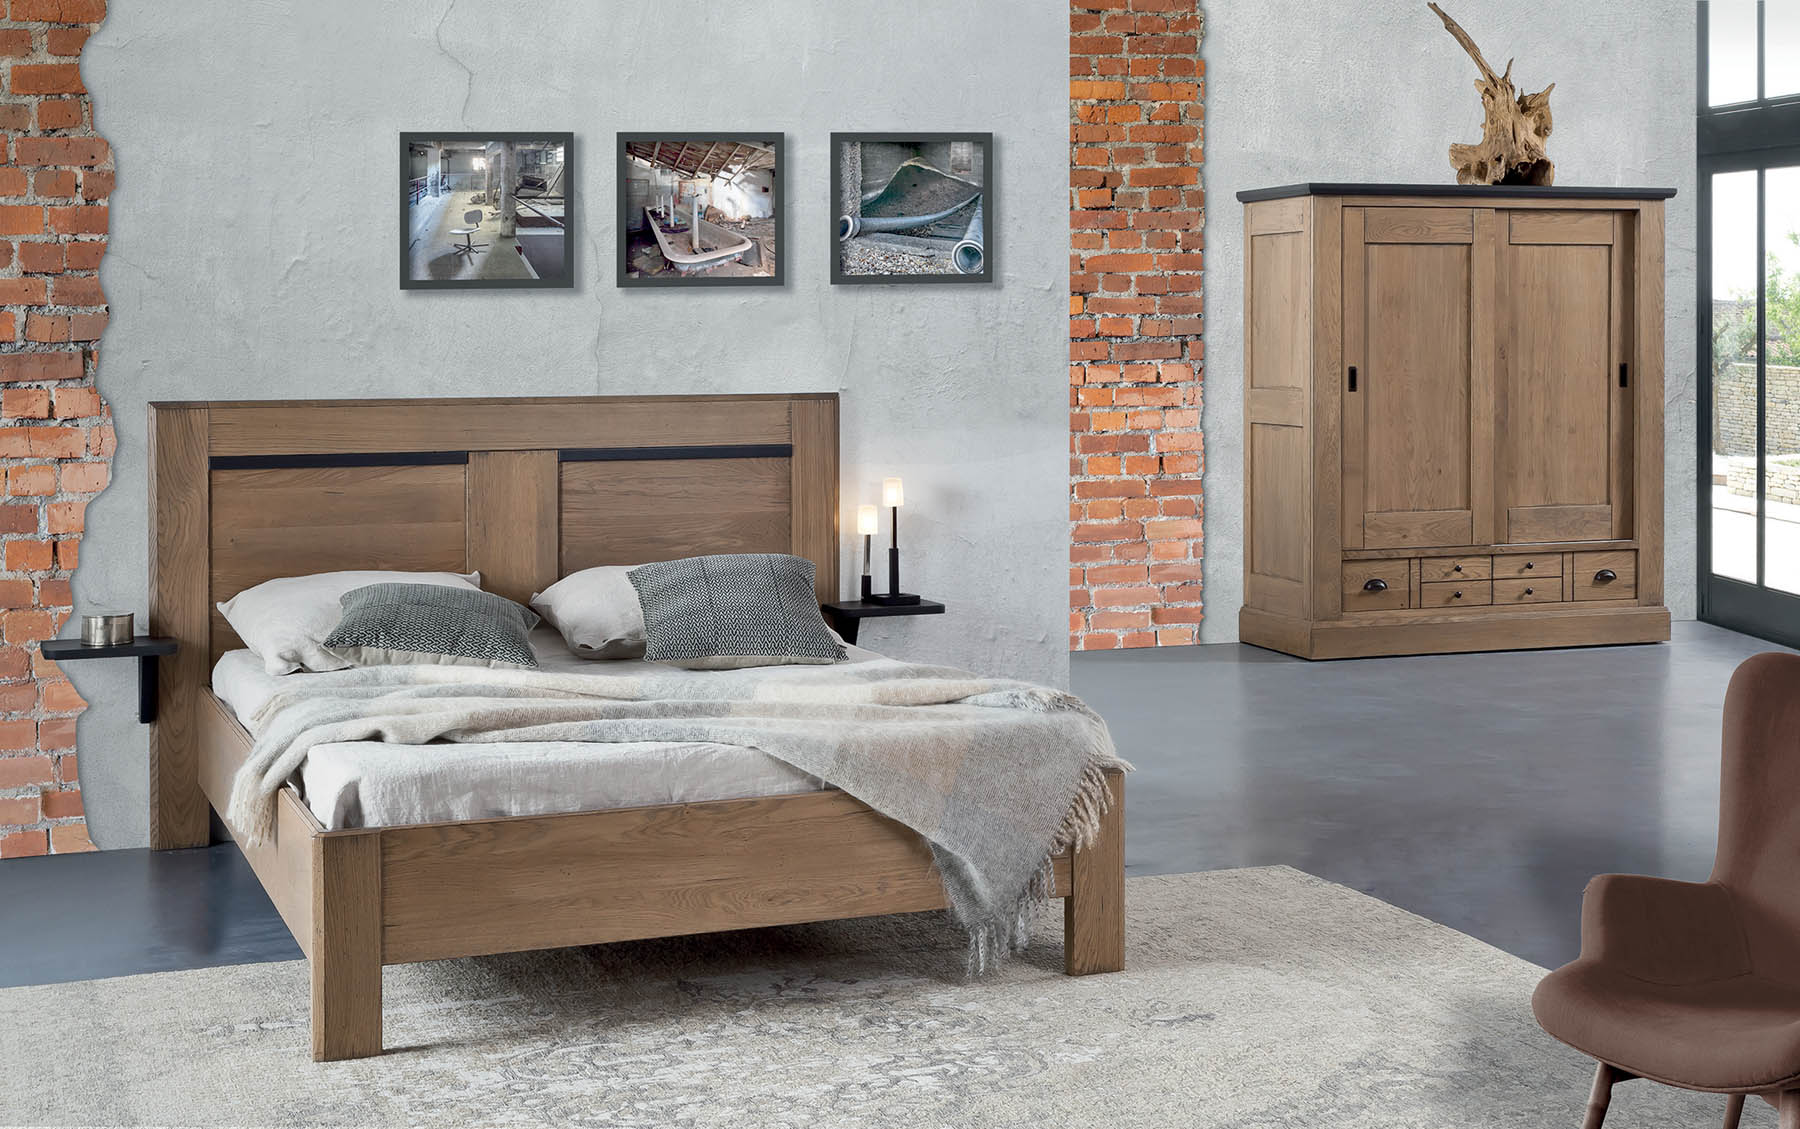 chambre en ch ne massif marseille romane sur draguignan. Black Bedroom Furniture Sets. Home Design Ideas